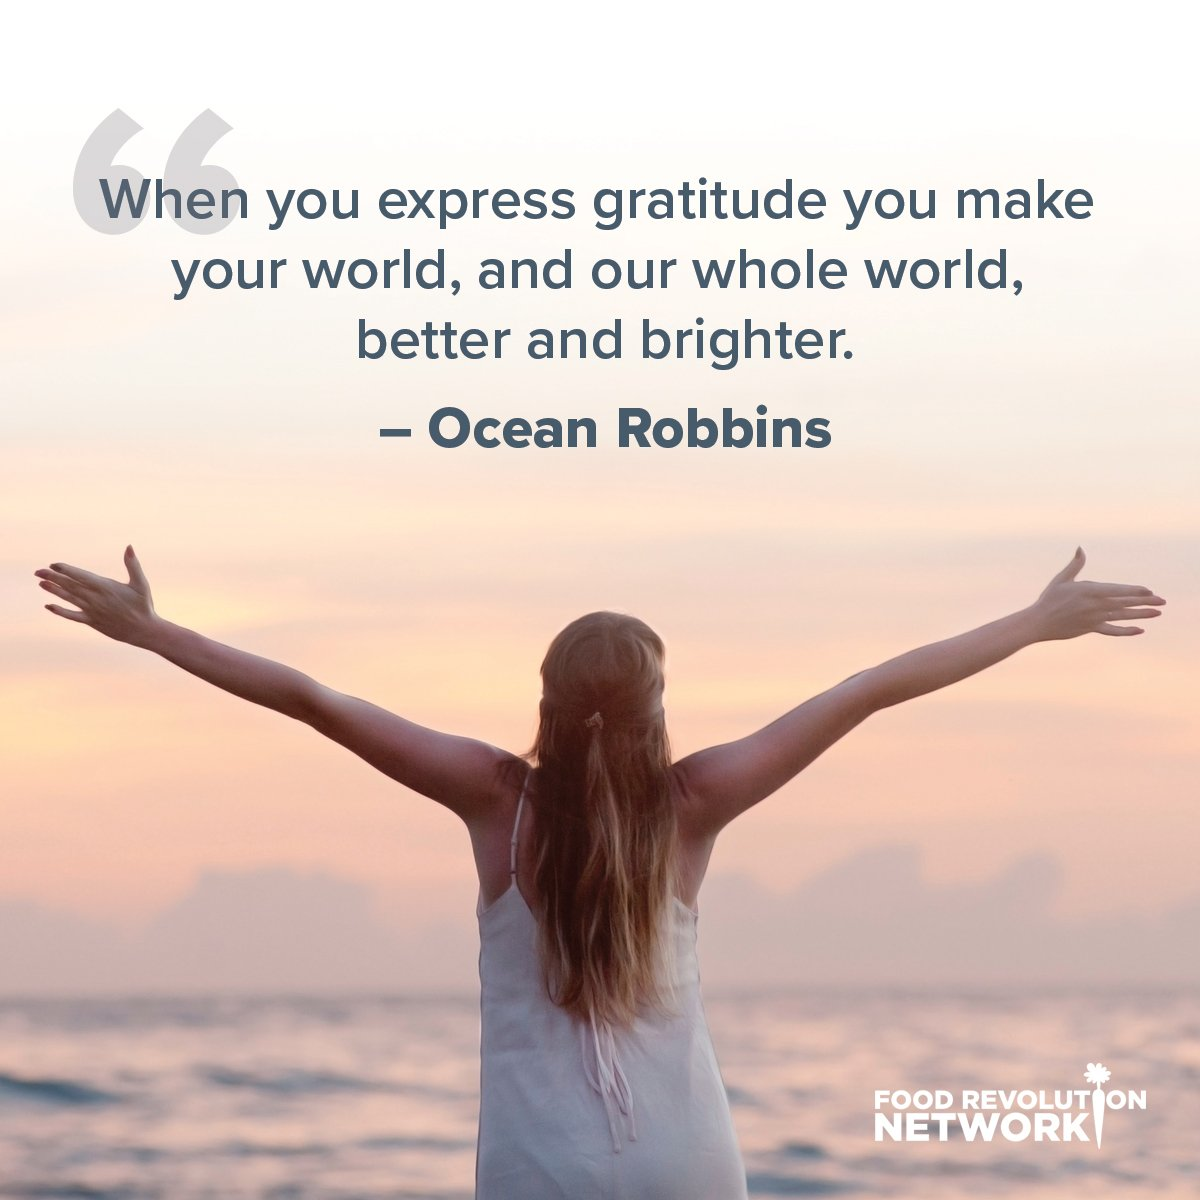 When you express gratitude you make your world, and our whole world, better and brighter. - Ocean Robbins